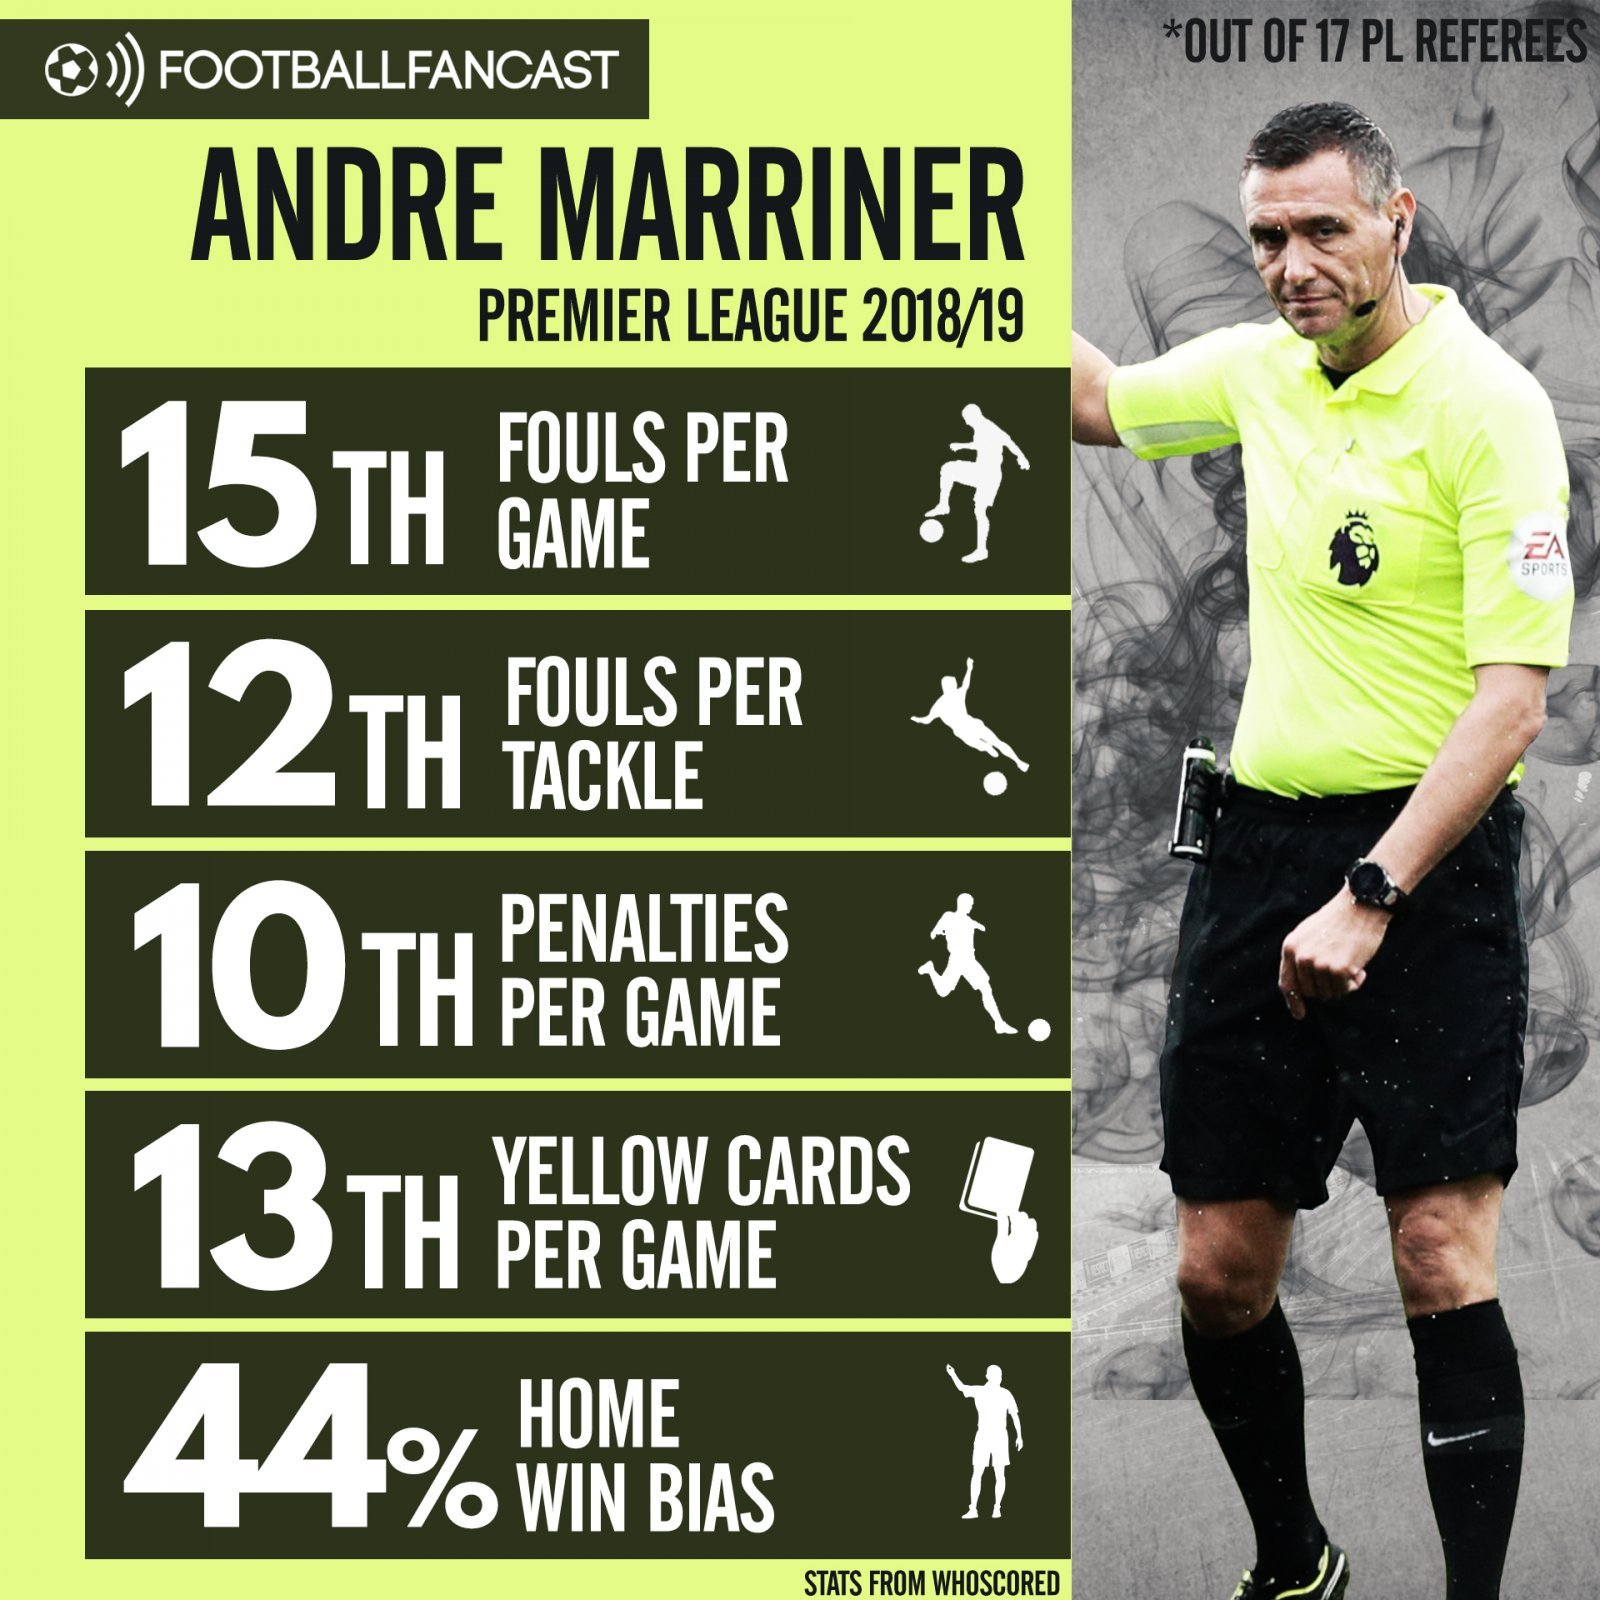 Andre Marriner's referee statistics this season